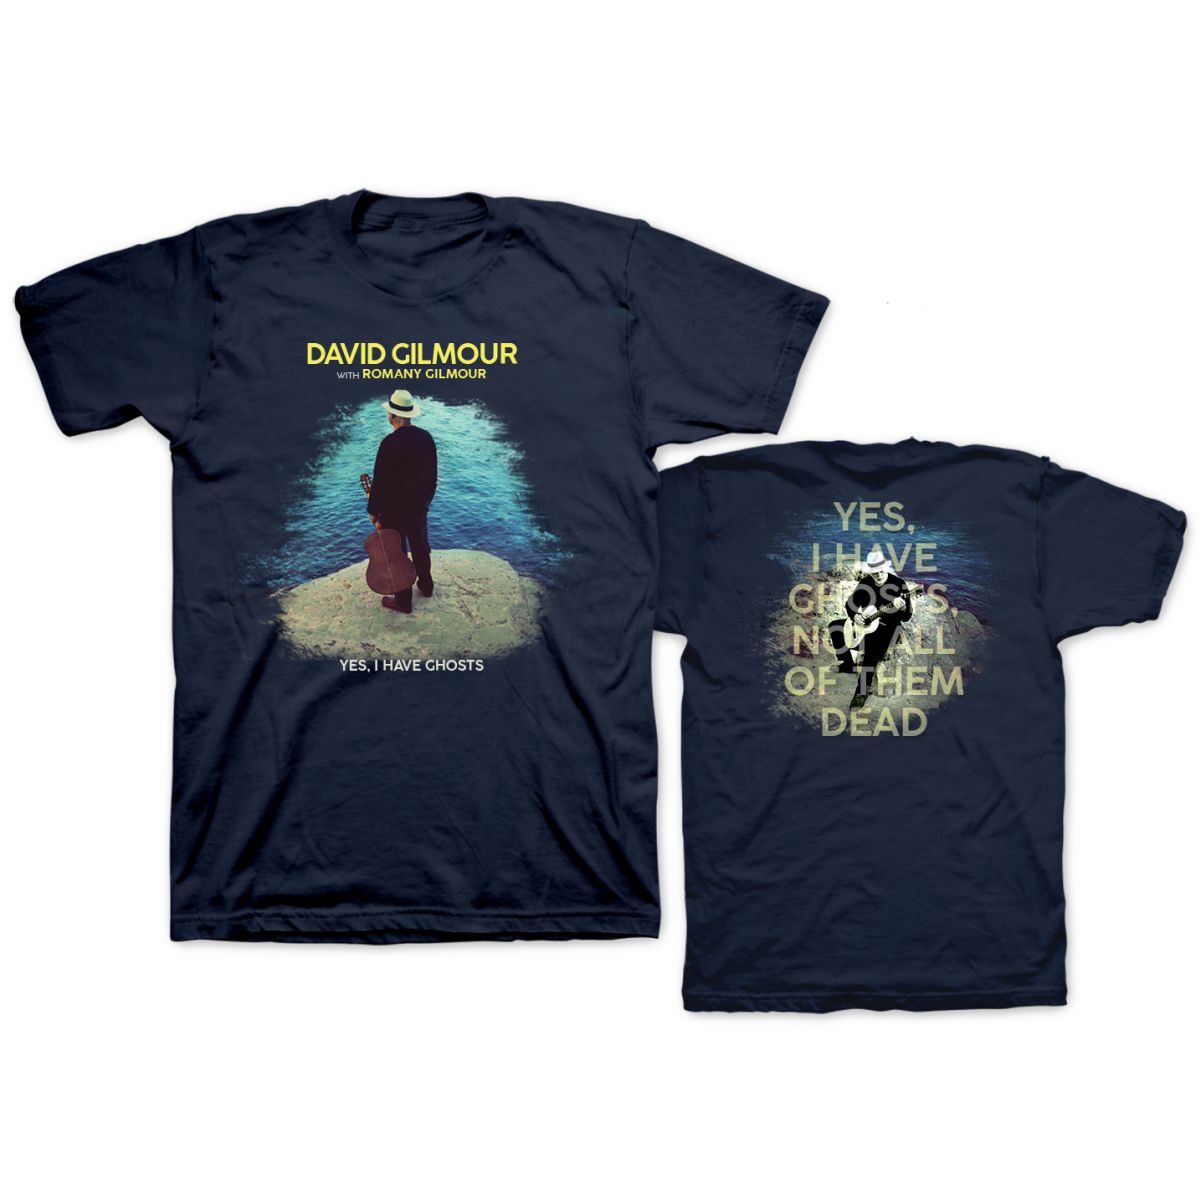 David Gilmour Yes, I have Ghosts Navy T-shirt